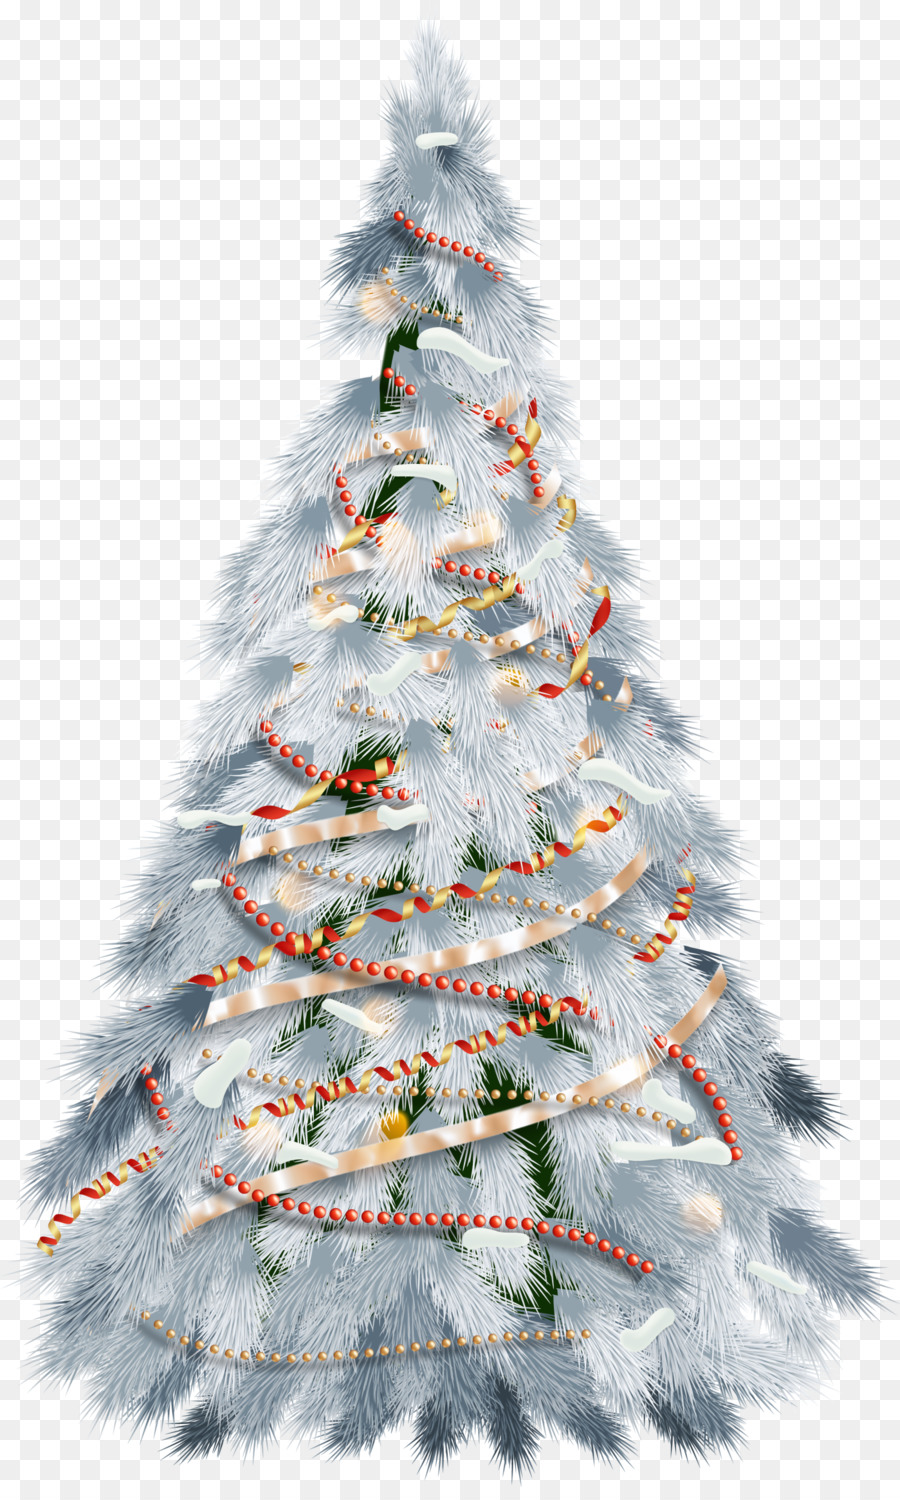 White Christmas Tree Png.The White Ribbon Christmas Tree Png Down 602282 Png